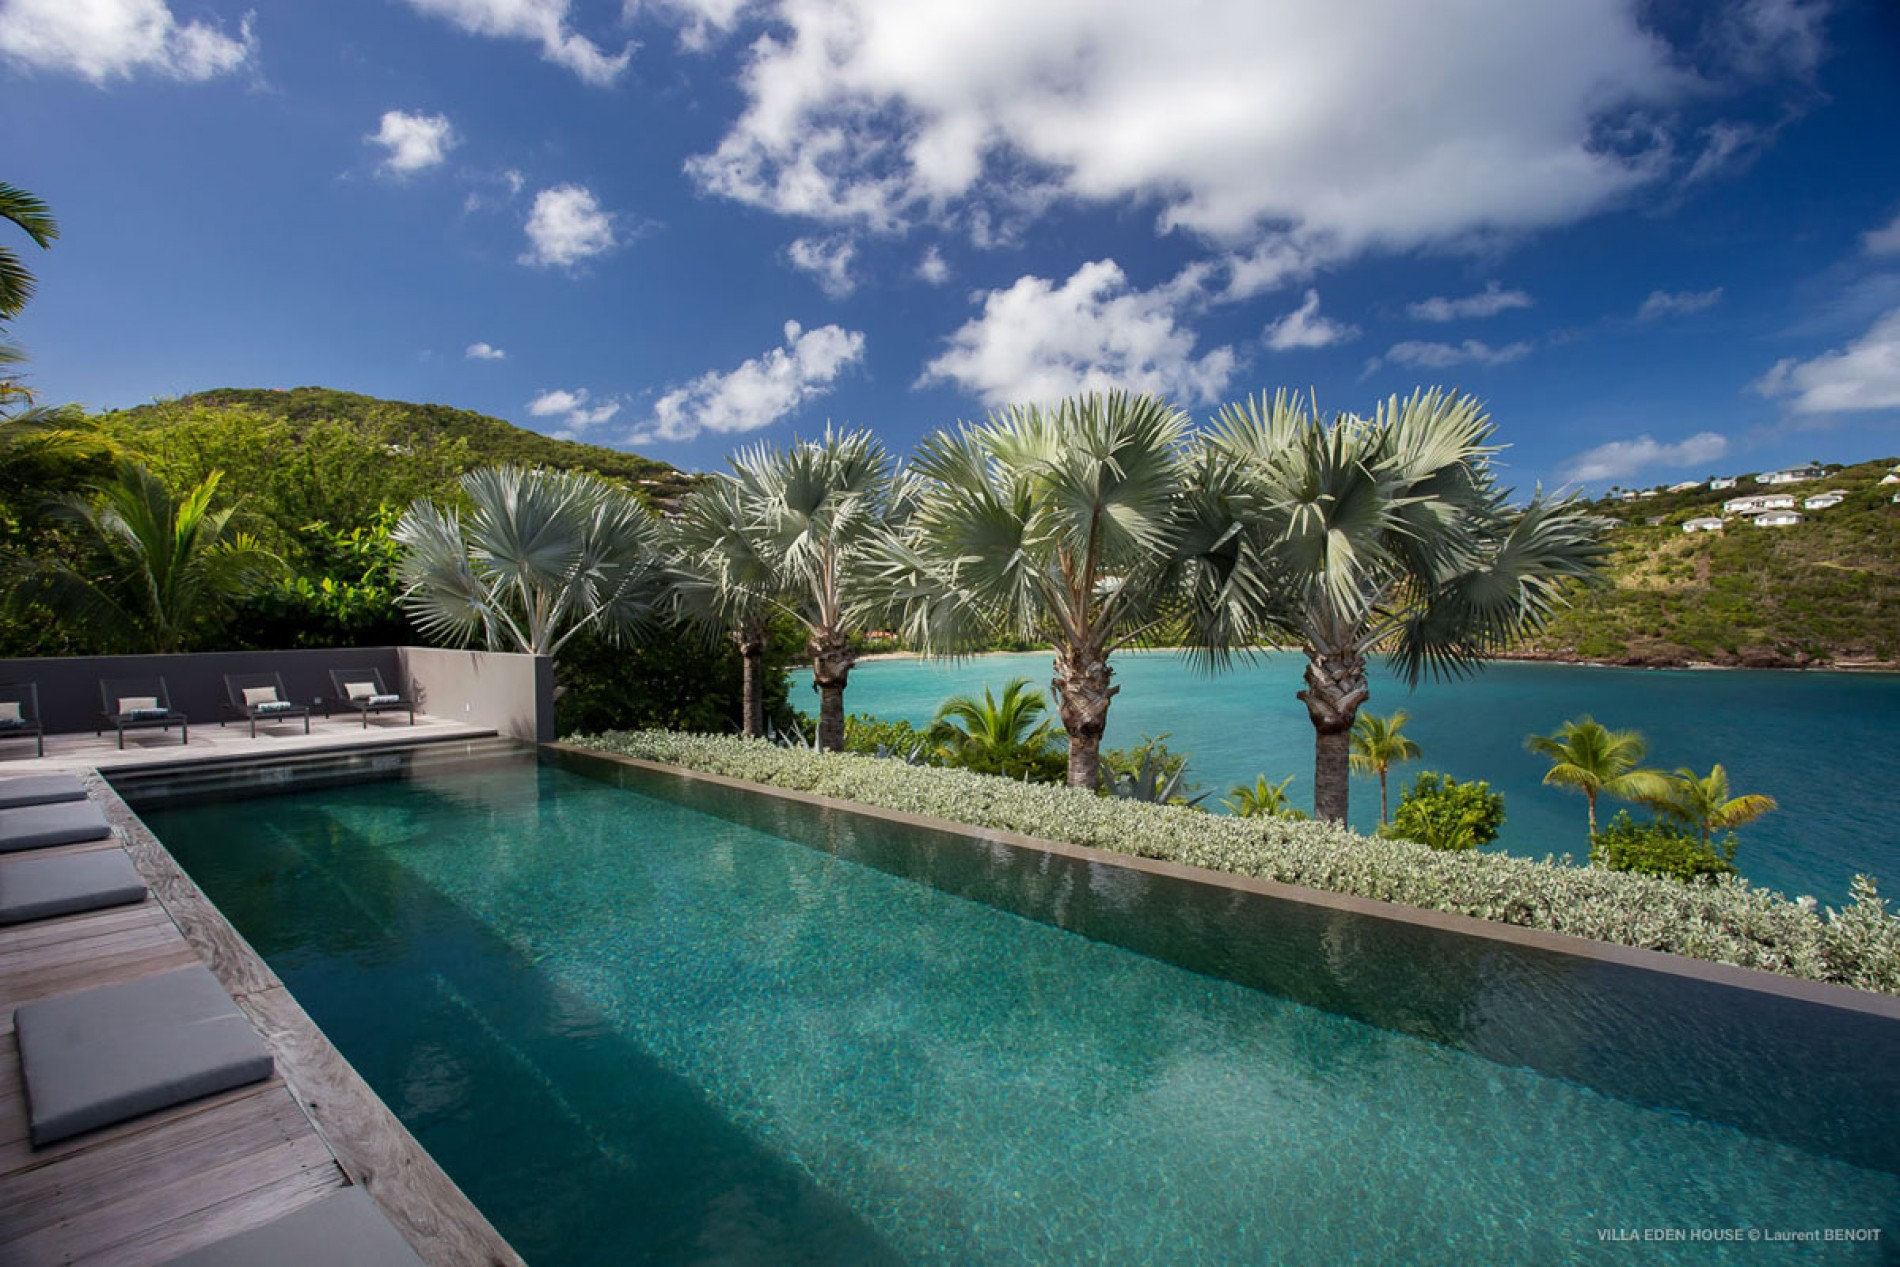 Eden house st barths luxury villa st barths for Marigot beach st barts